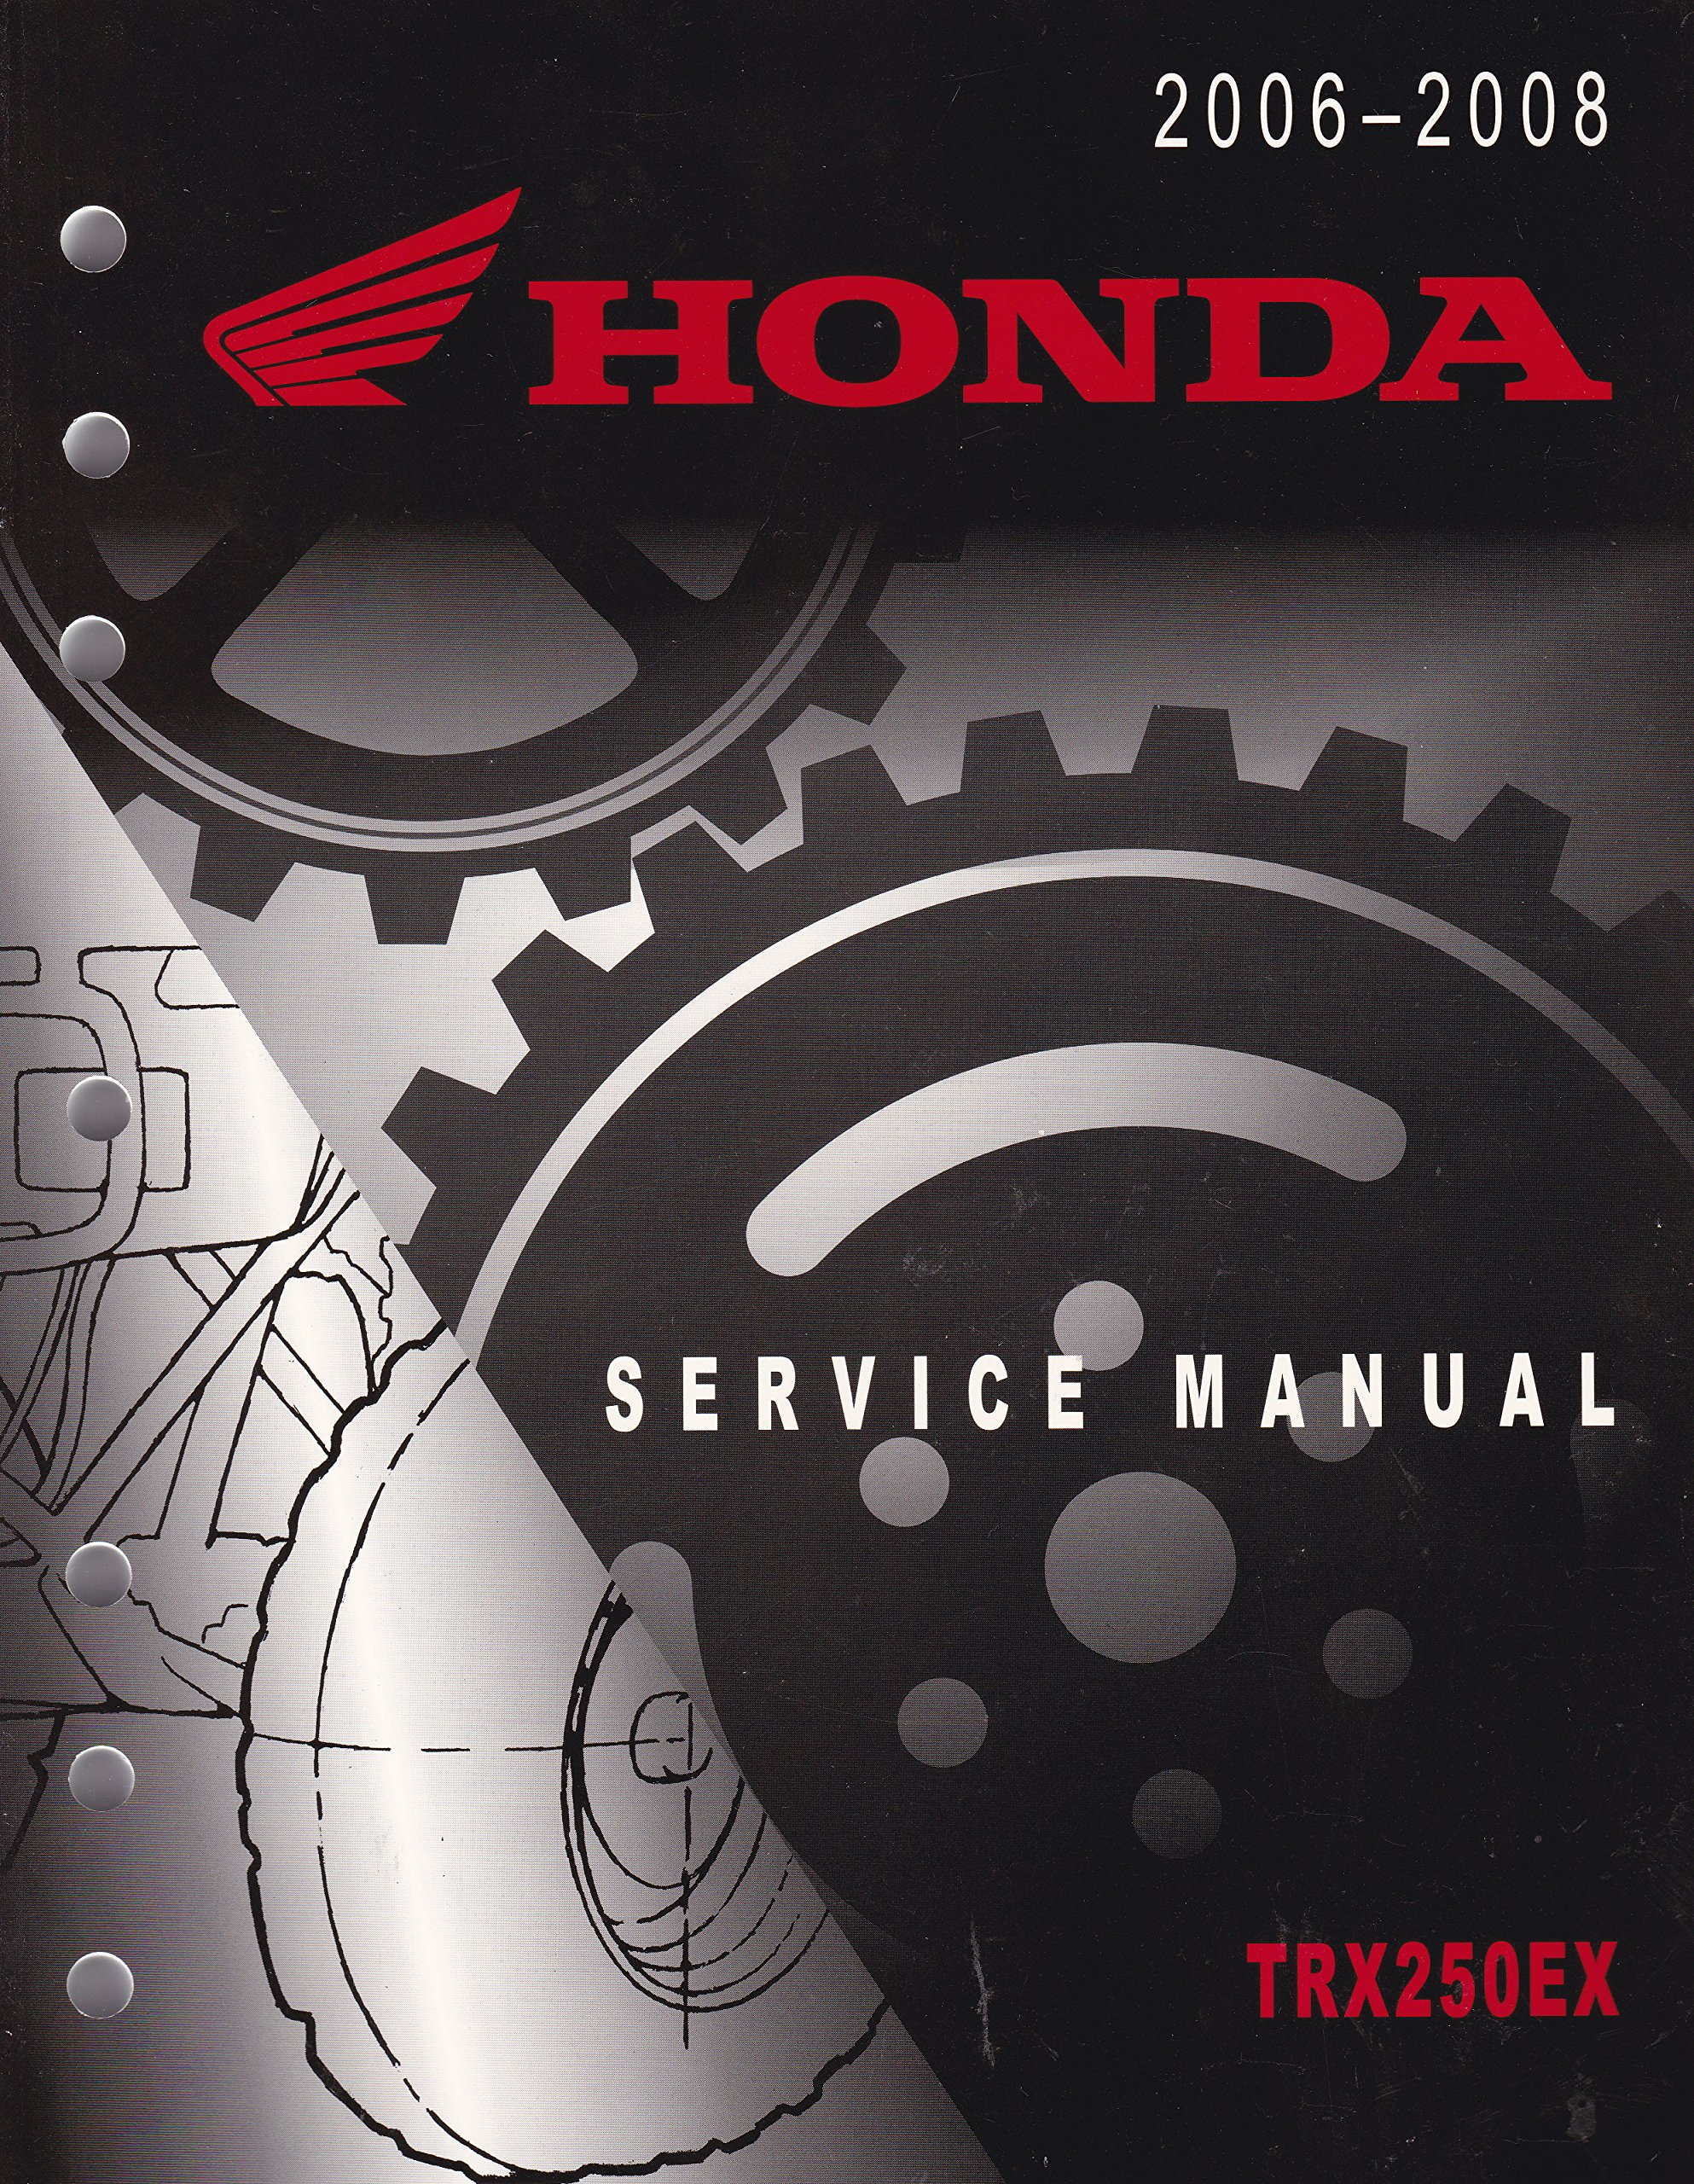 2006 2007 2008 TRX250EX TRX 250EX Service Repair Shop Manual FACTORY: honda:  Amazon.com: Books